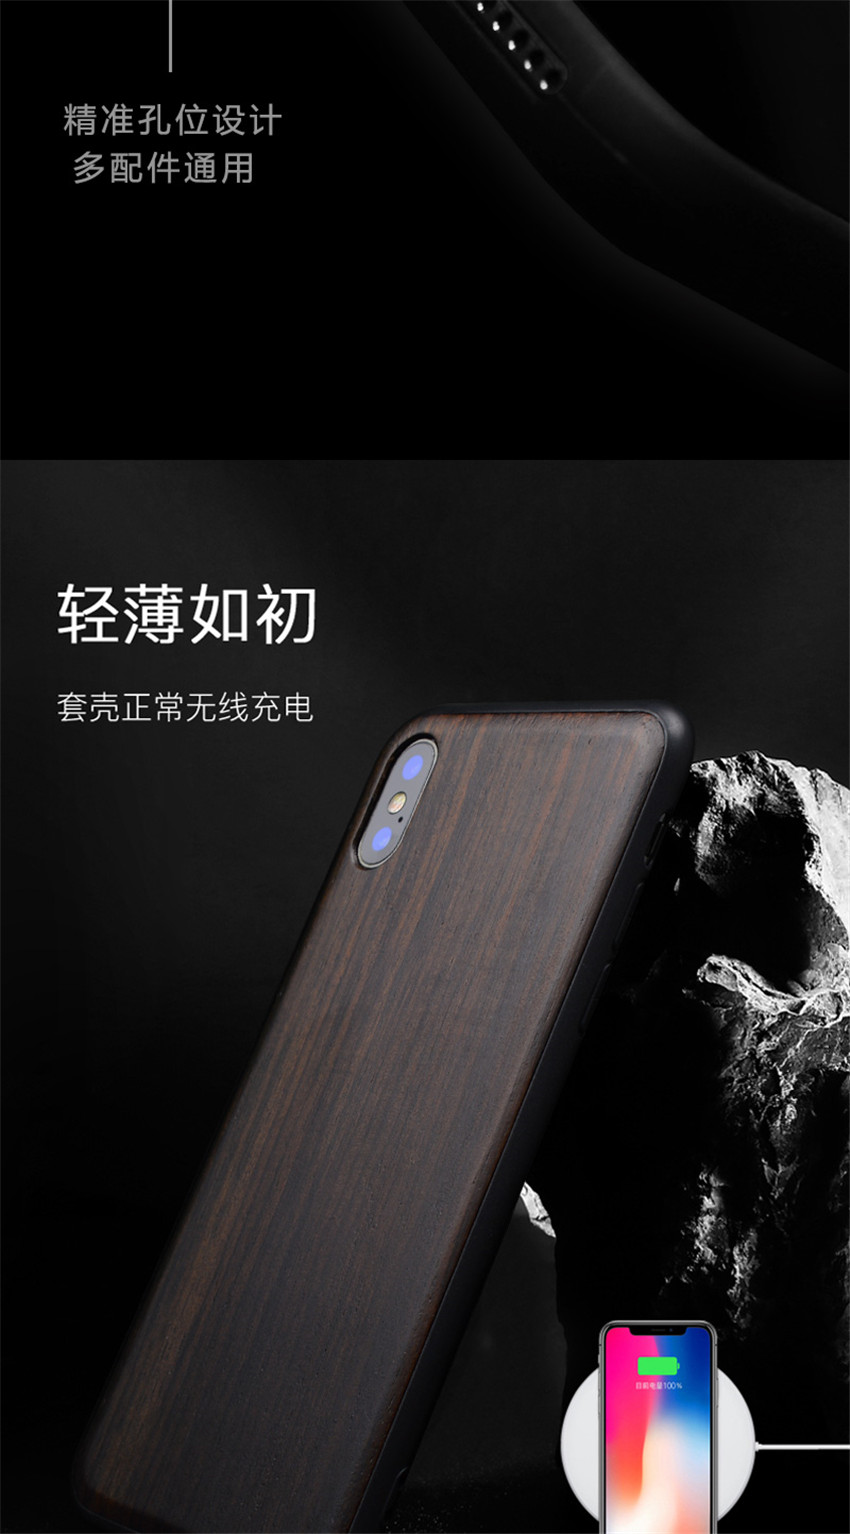 2018 New For iPhone X Case Black Ebony Wood Cover For iPhone X iPhone 10 Carved TPU Bumper Wooden Protective Case 5 (6)